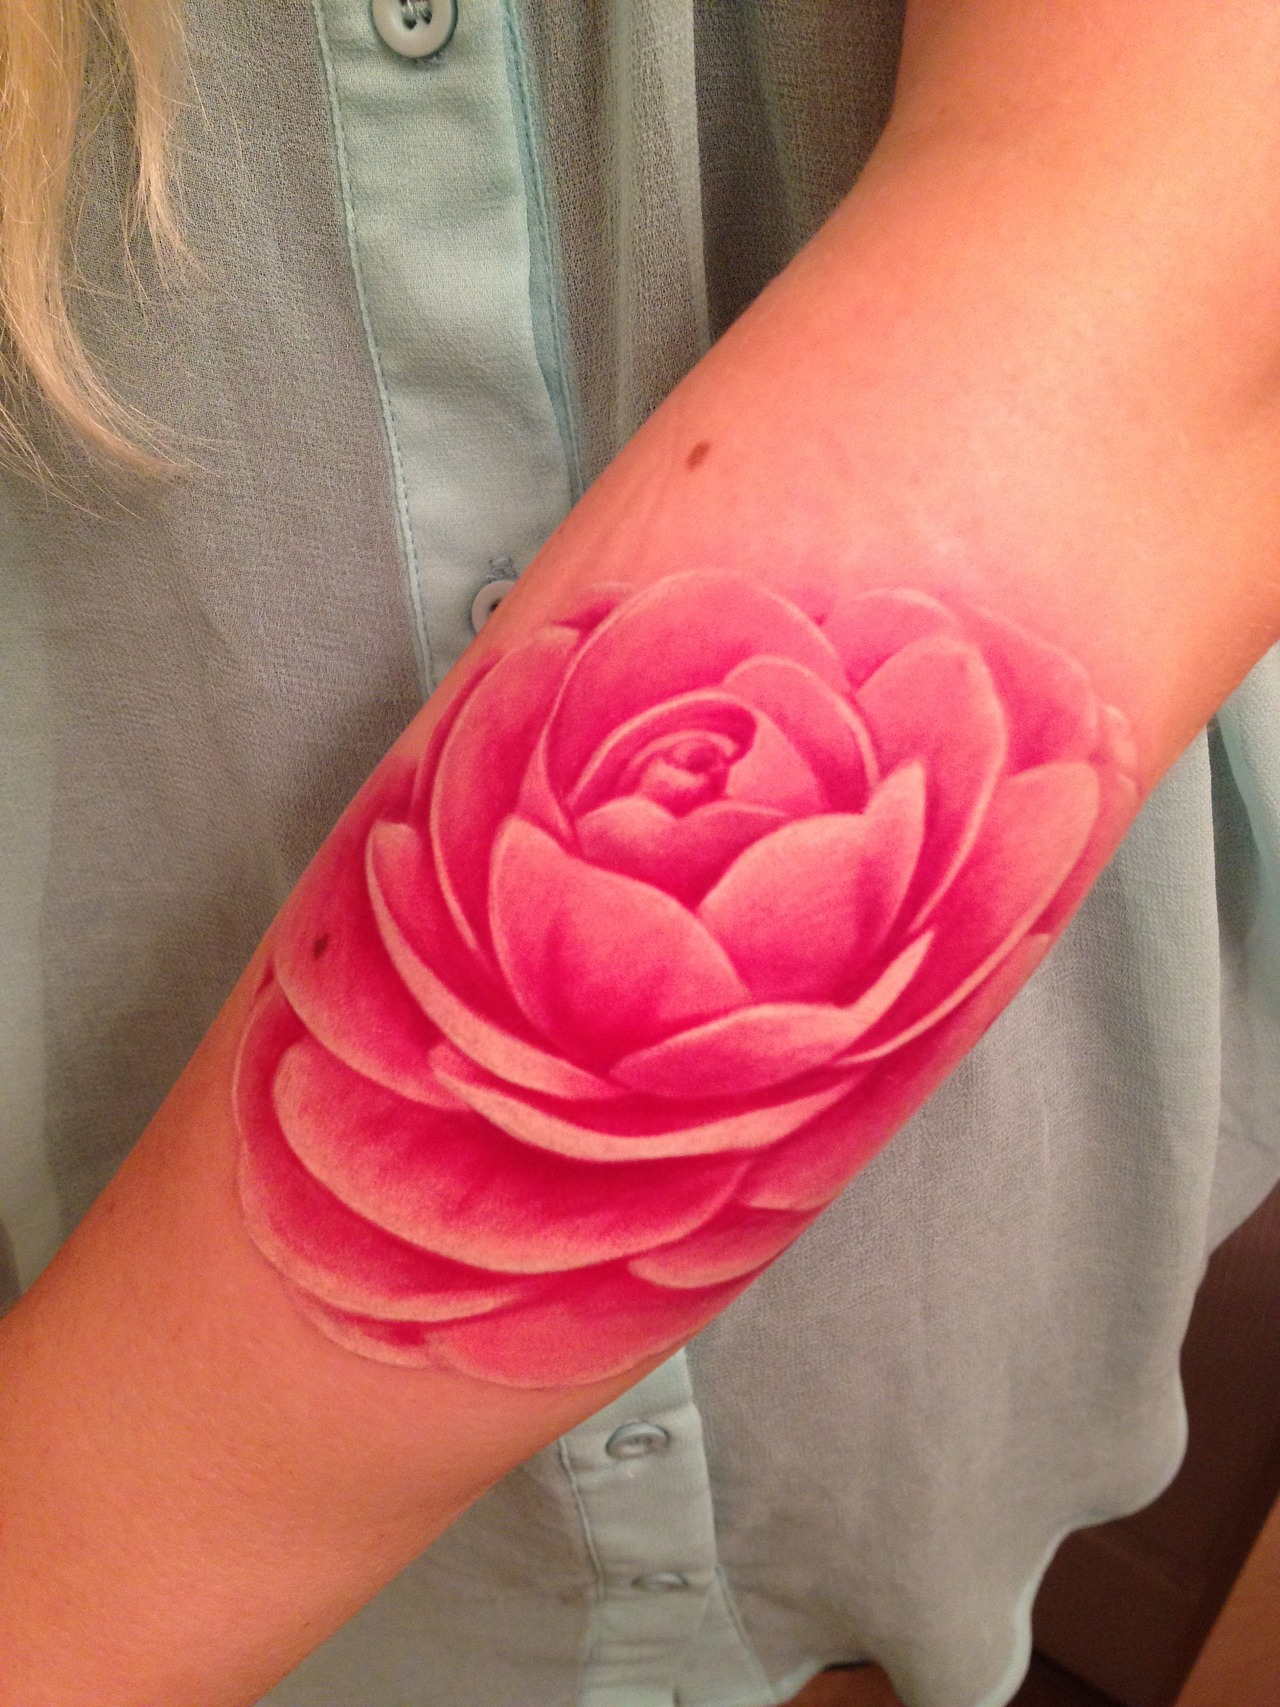 Lotus Tattoos Designs Ideas and Meaning